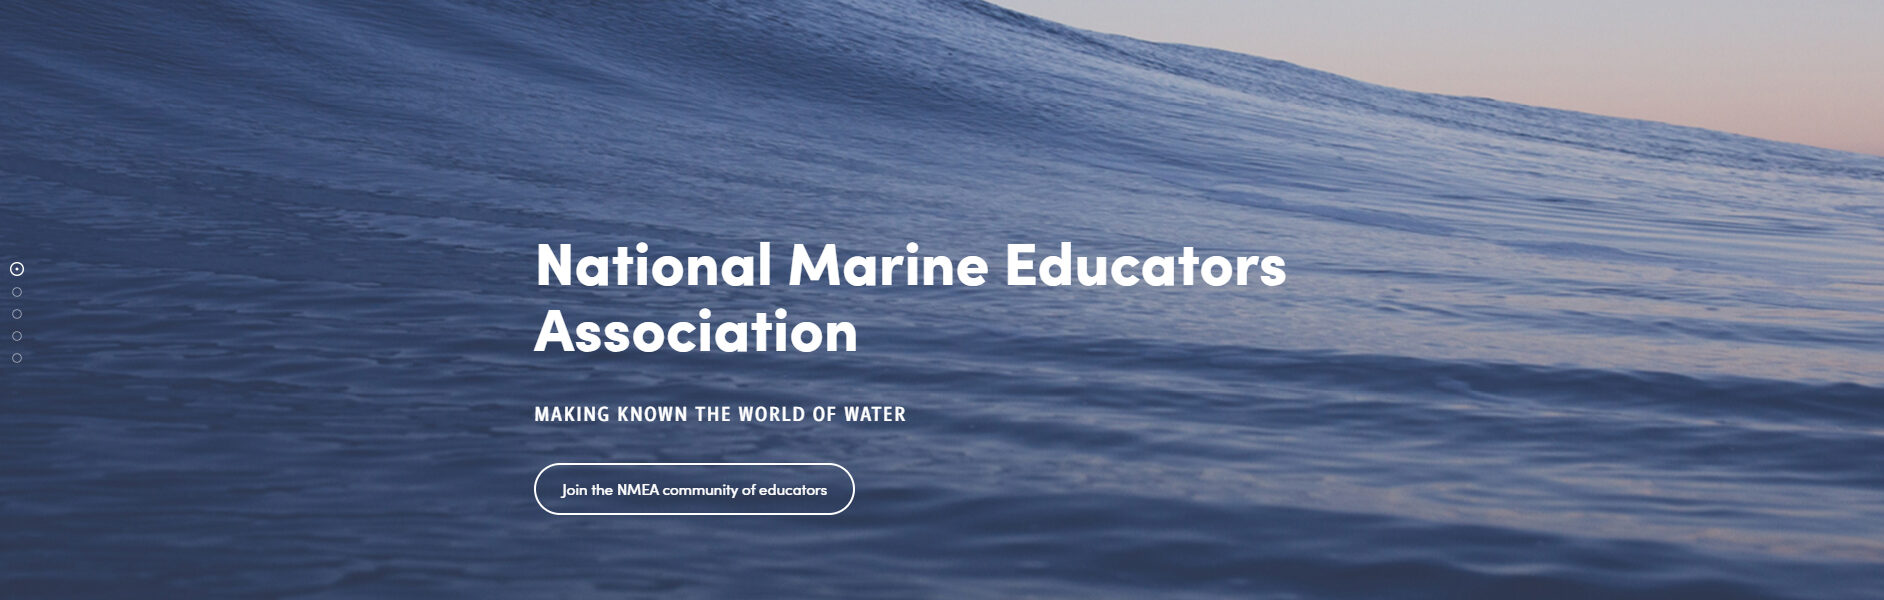 National Marine Educators Association